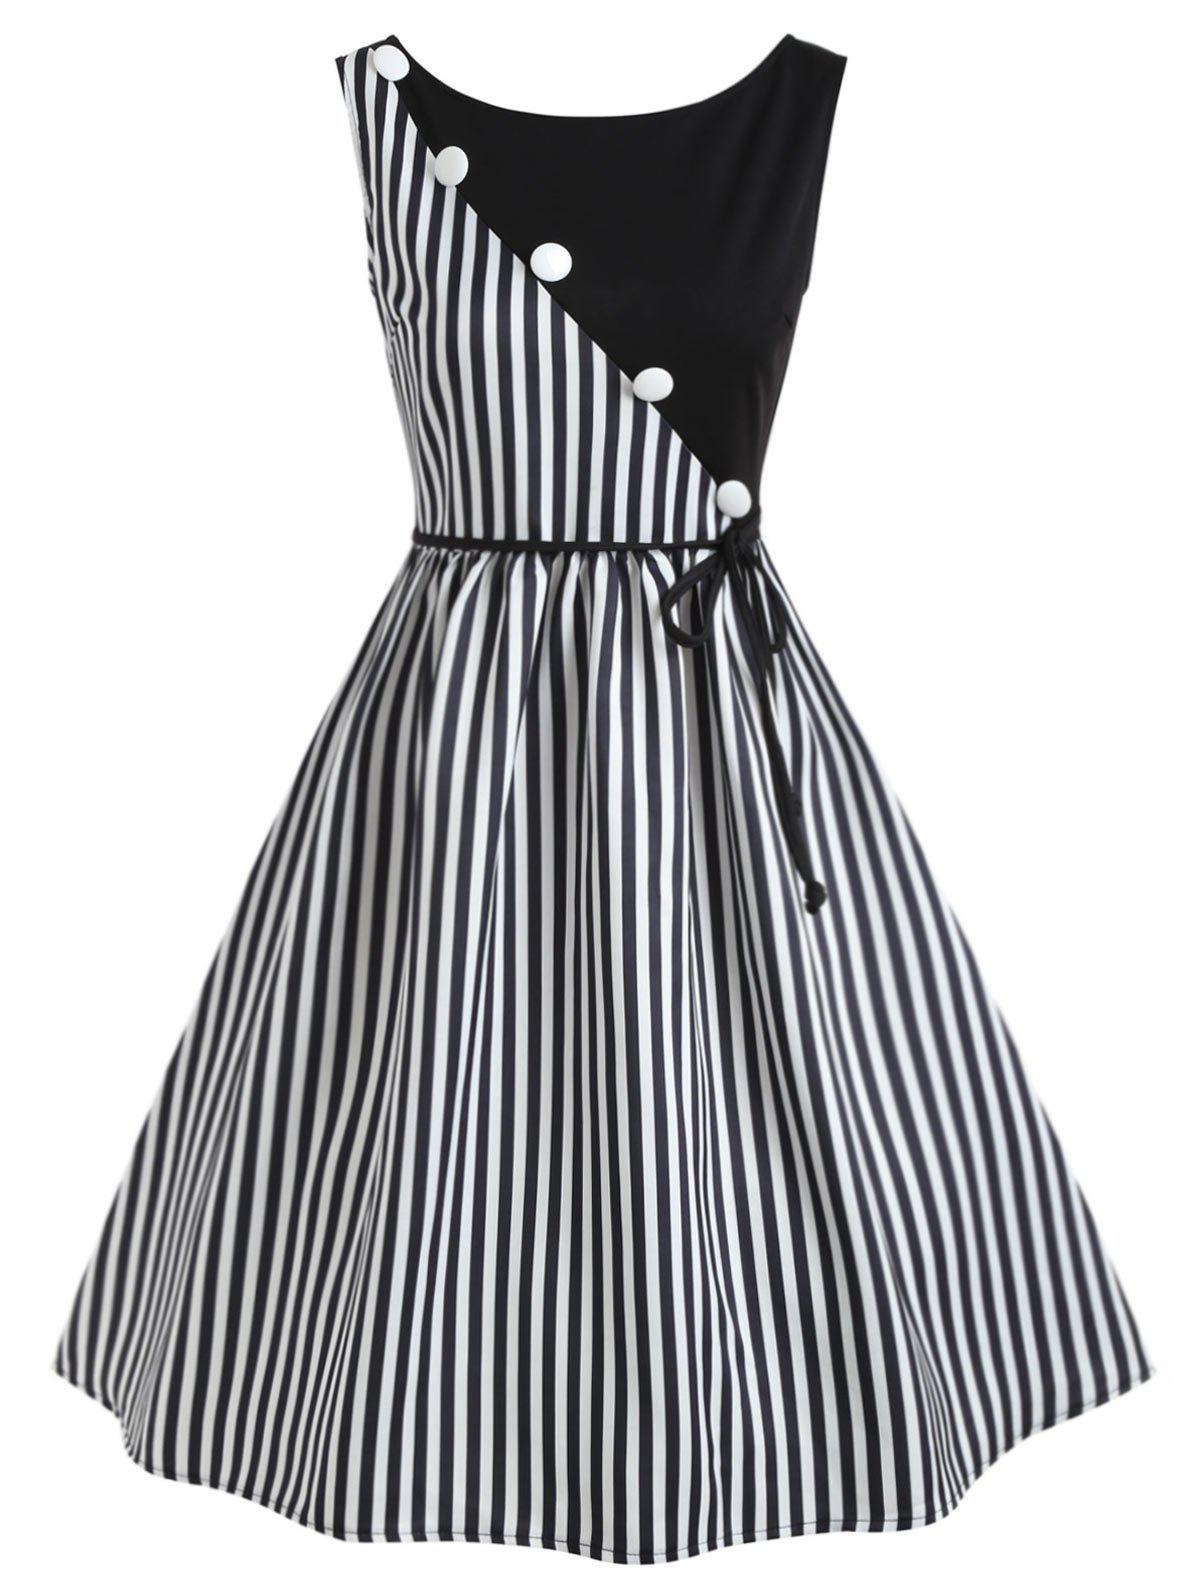 Buy Vertical Stripe Sleeveless Casual Dress